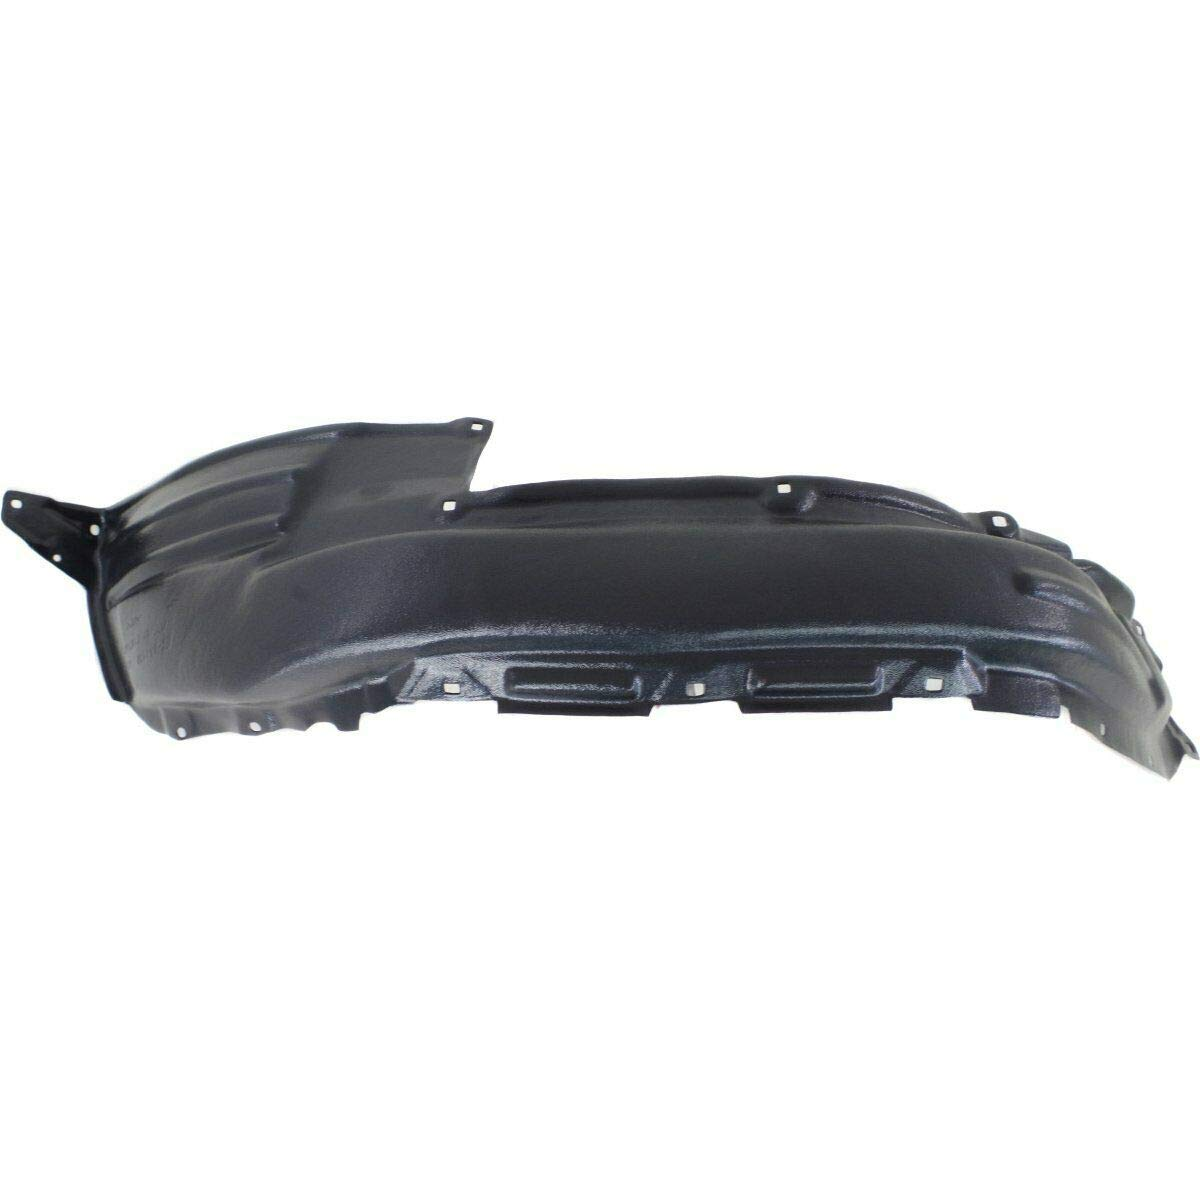 KA Depot for 2014-2016 Forte Passenger Side RH Front Fender Liner Inner Panel 86812A7000 KI1249122